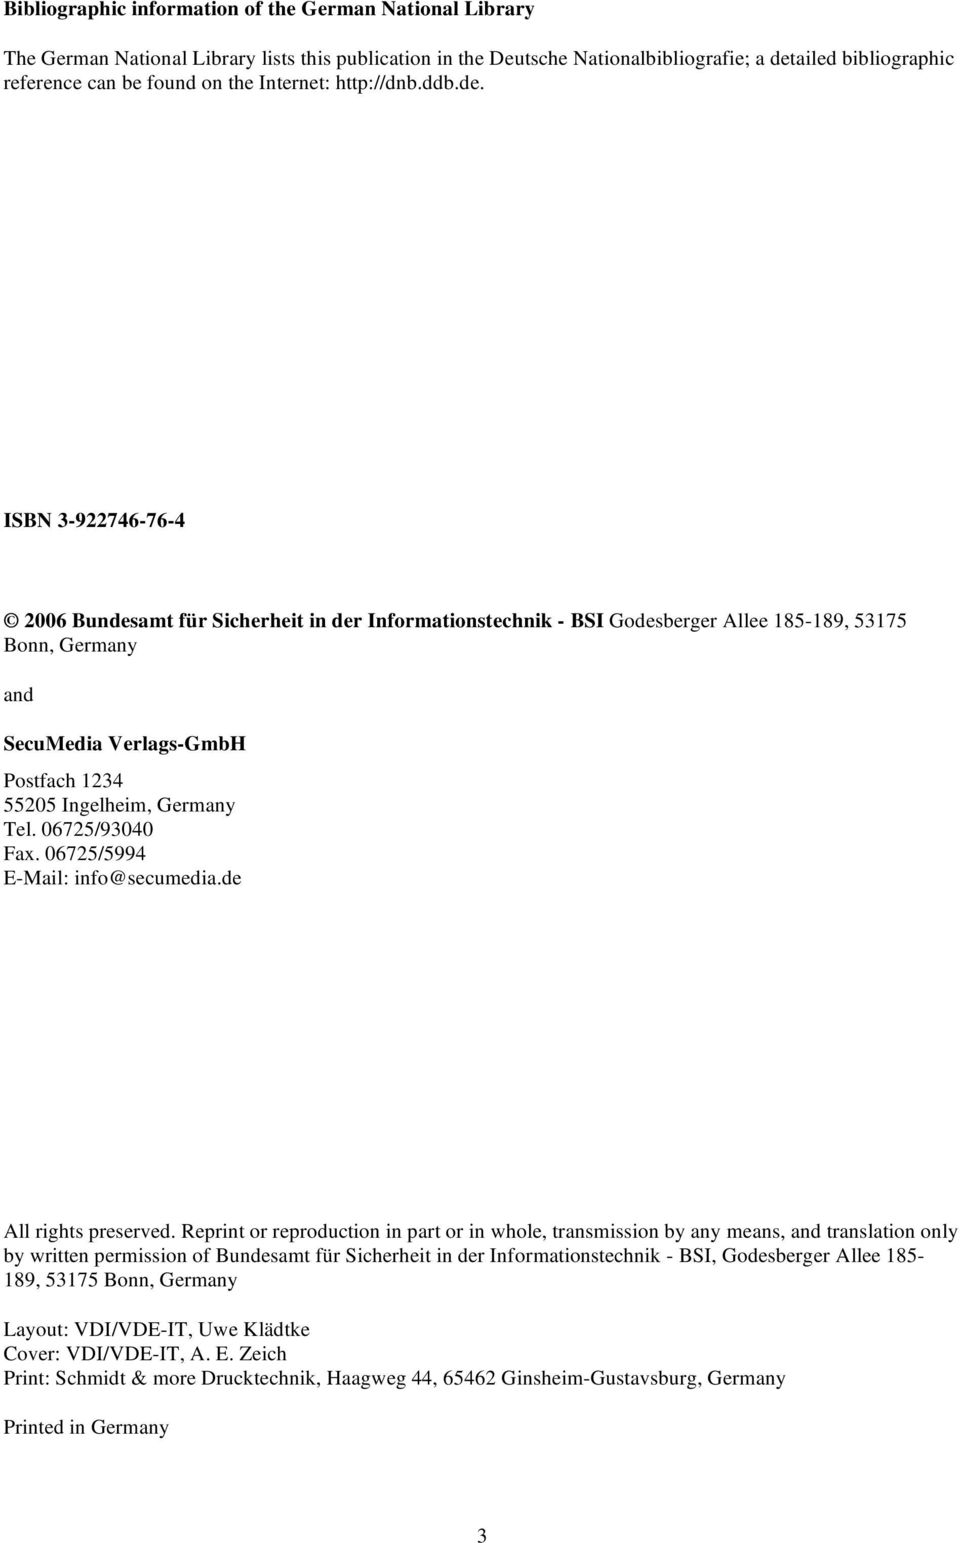 ISBN 3-922746-76-4 2006 Bundesamt für Sicherheit in der Informationstechnik - BSI Godesberger Allee 185-189, 53175 Bonn, Germany and SecuMedia Verlags-GmbH Postfach 1234 55205 Ingelheim, Germany Tel.